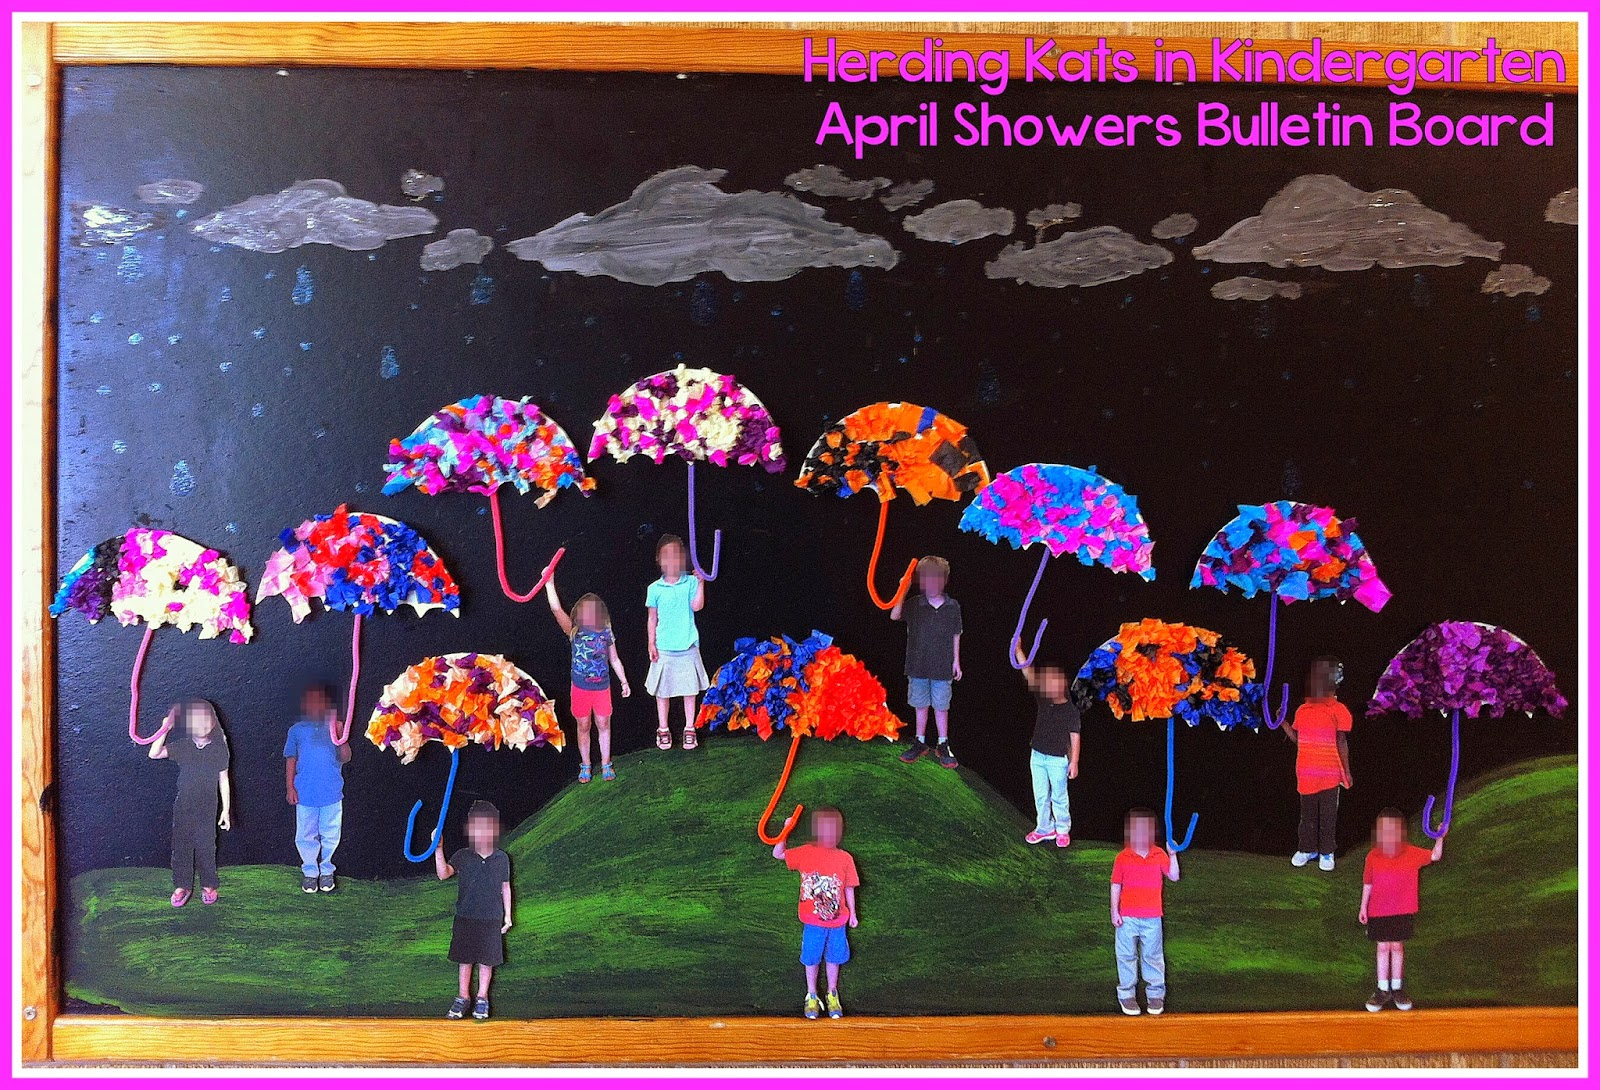 Herding Kats In Kindergarten April Showers Bulletin Board